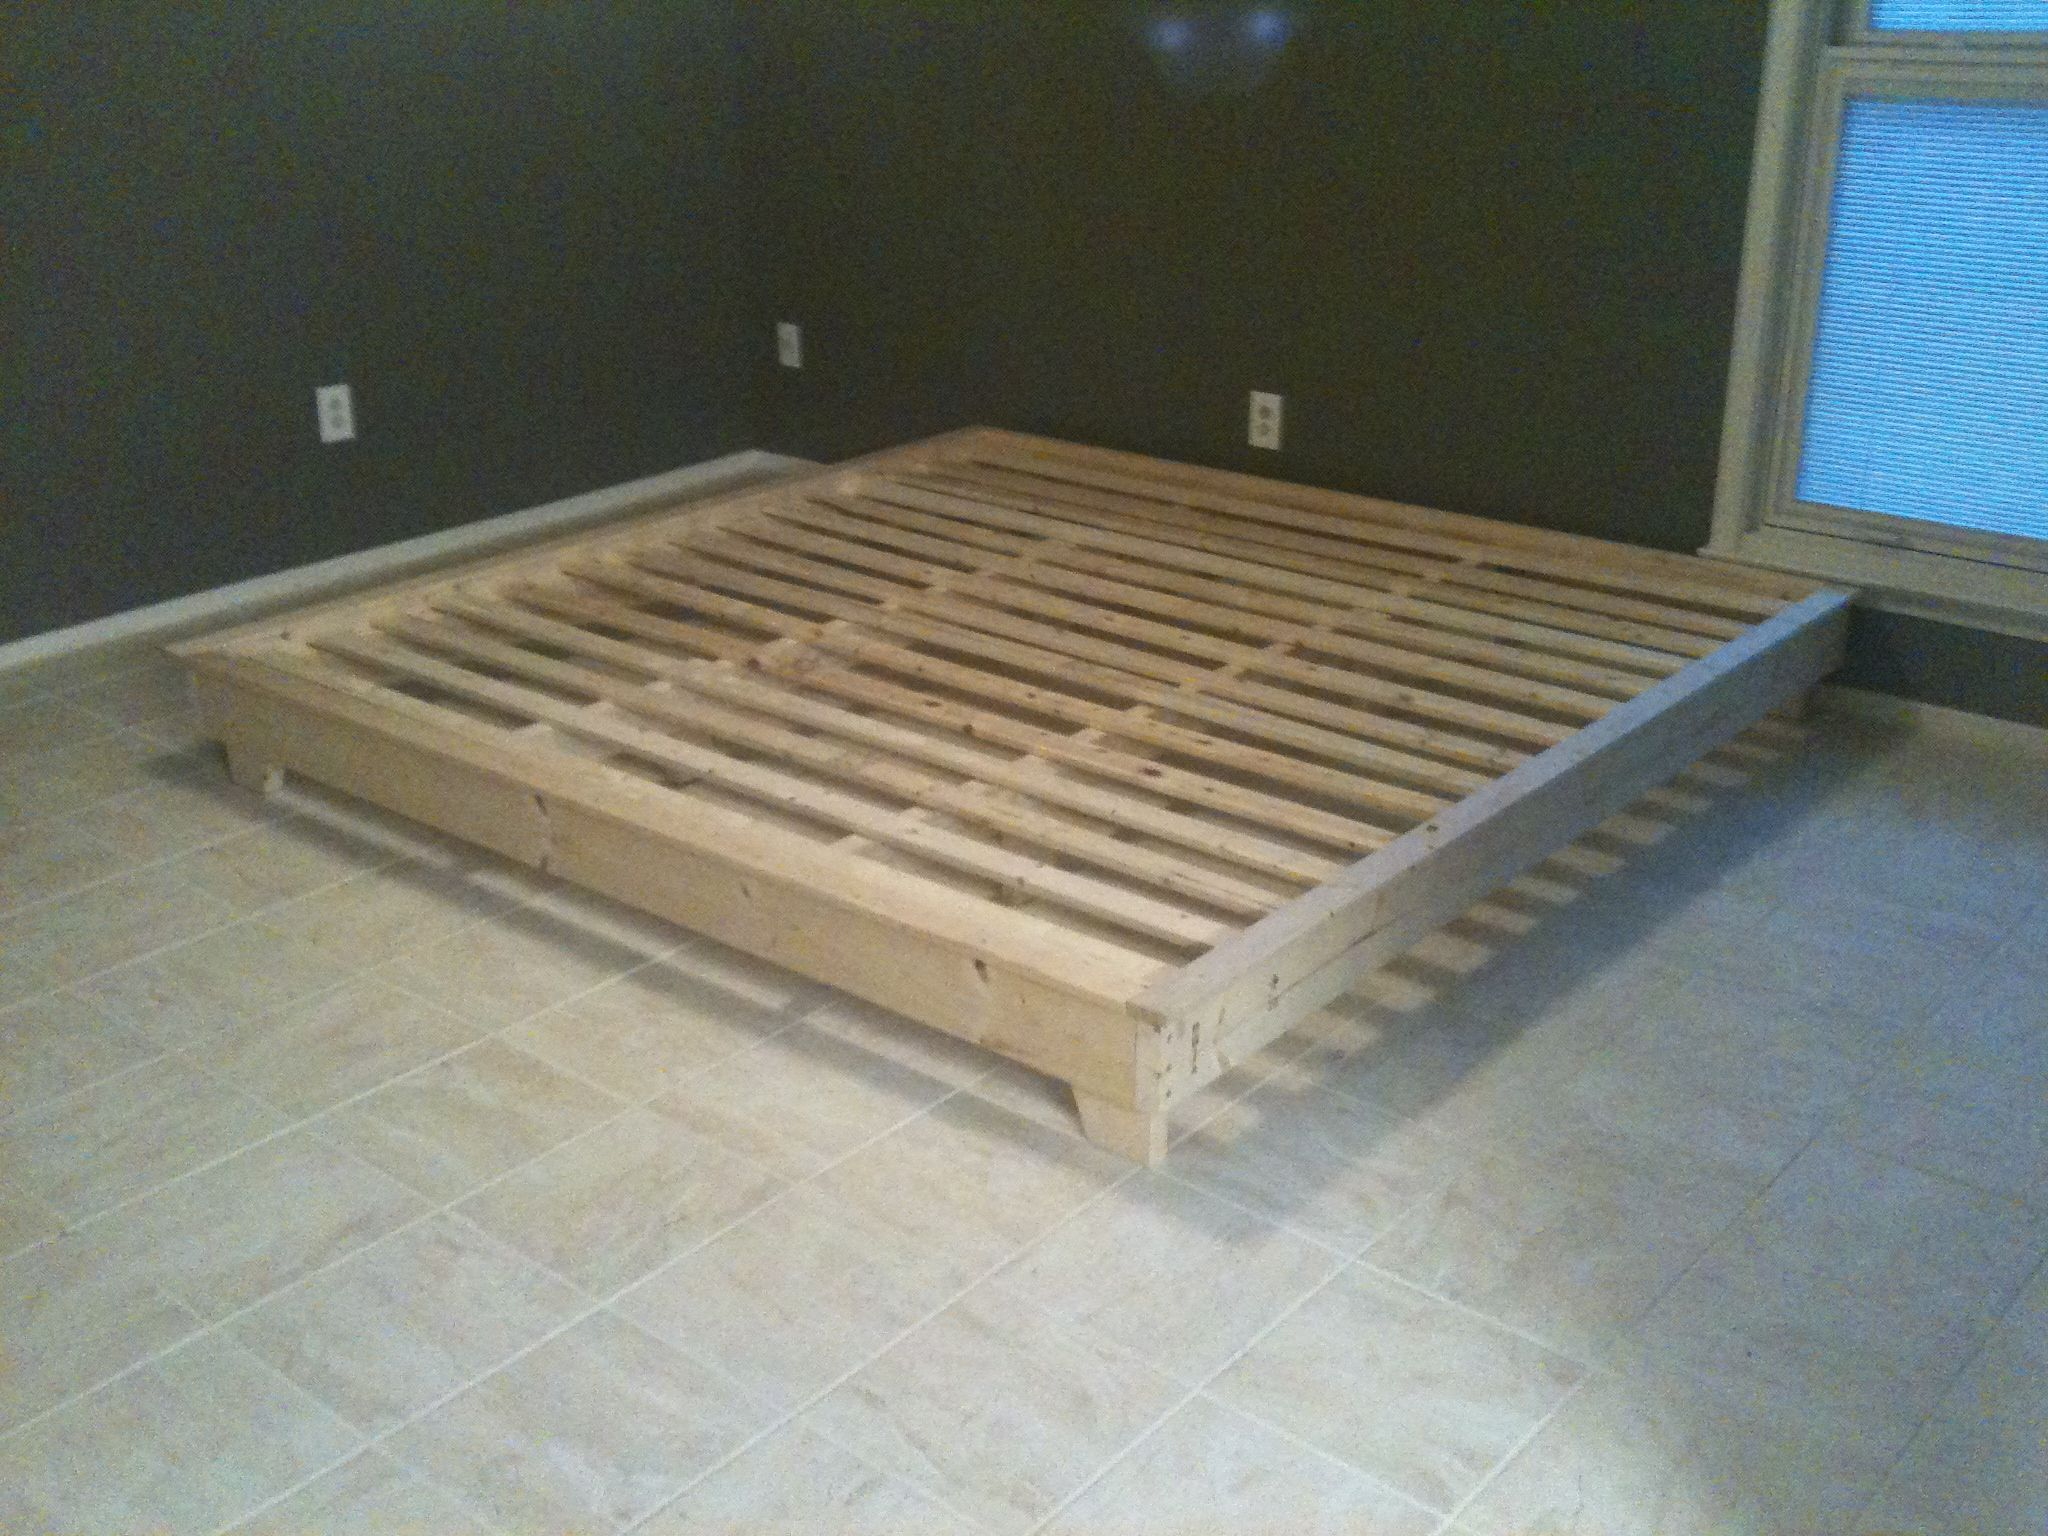 Pin By Gia Ohara On Projects To Do Platform Bed Plans Bed